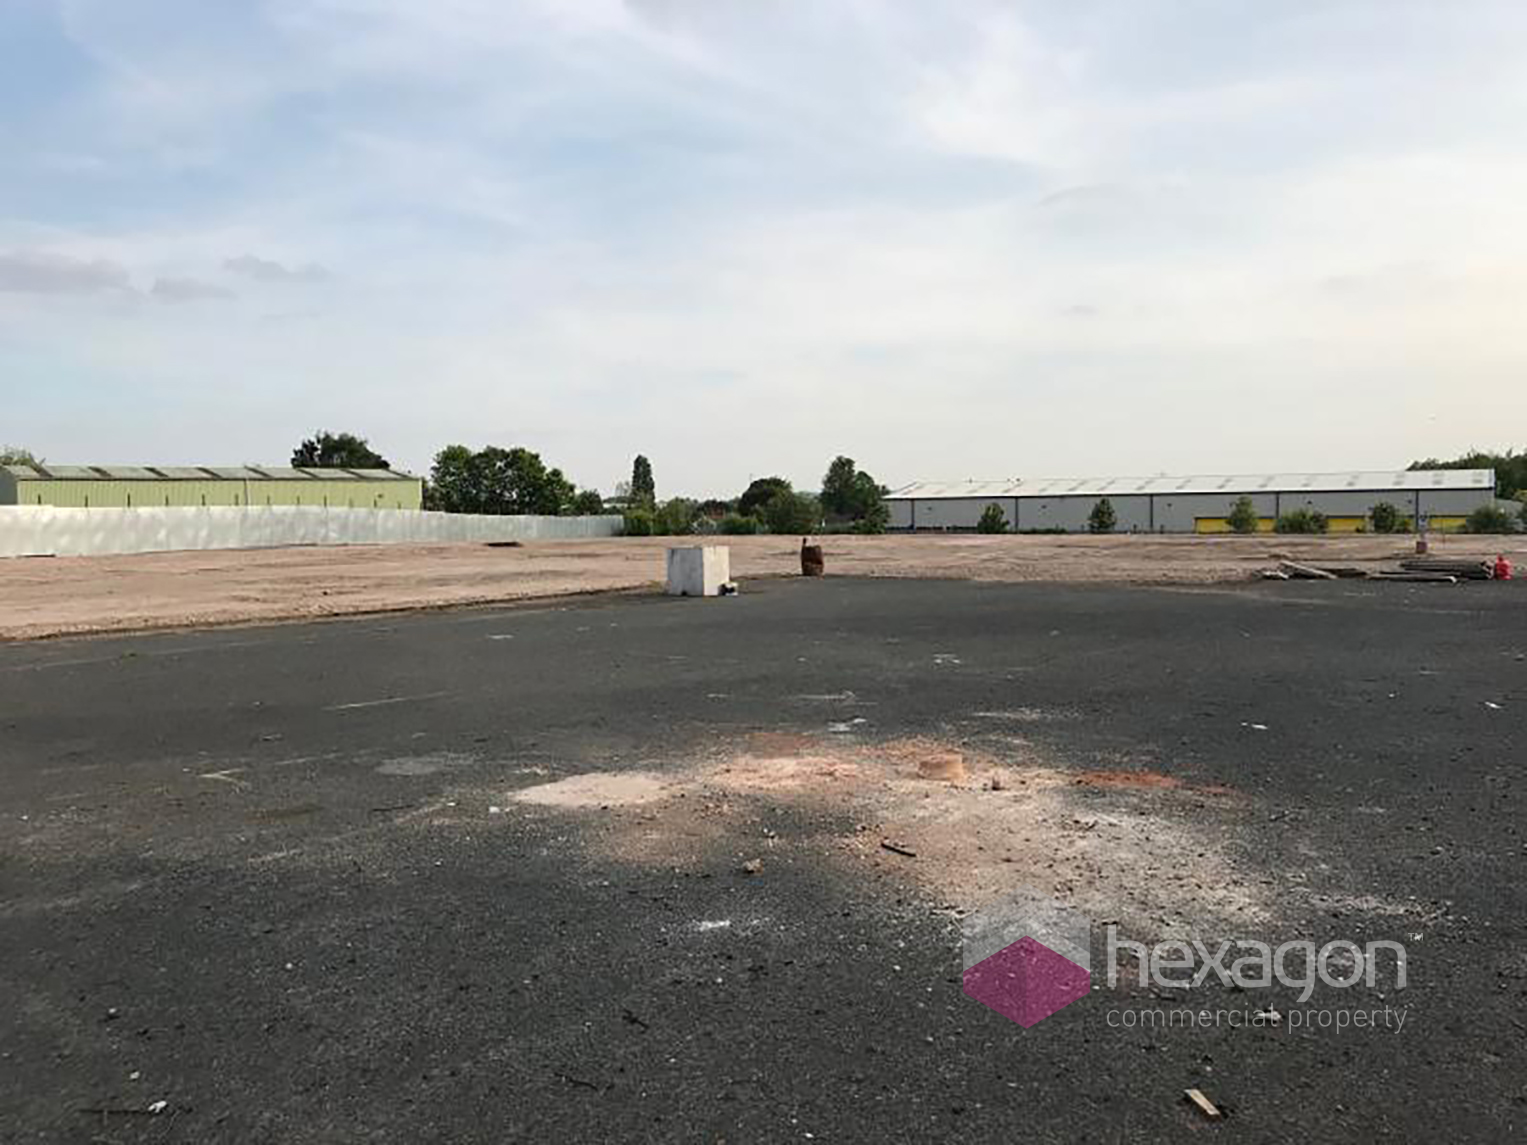 Land (Commercial) for rent in Willenhall. From Hexagon Commercial Property